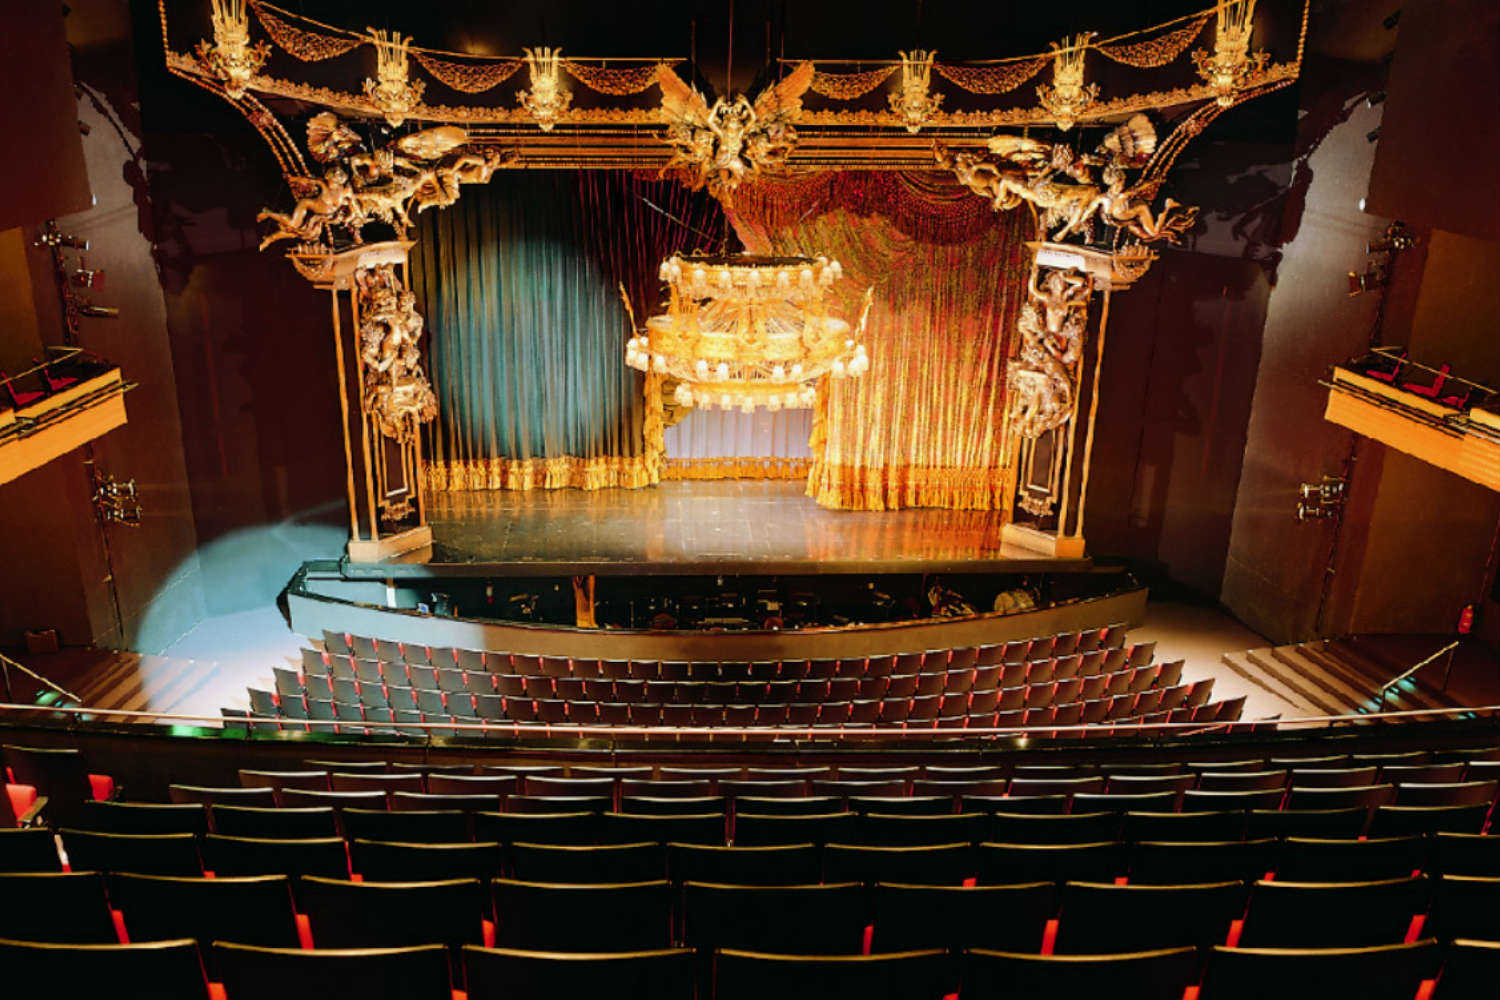 Musical Theater Basel in Basel, Switzerland. Acousting consulting and treatment by WSDG in Europe. Main stage with hidden treatment